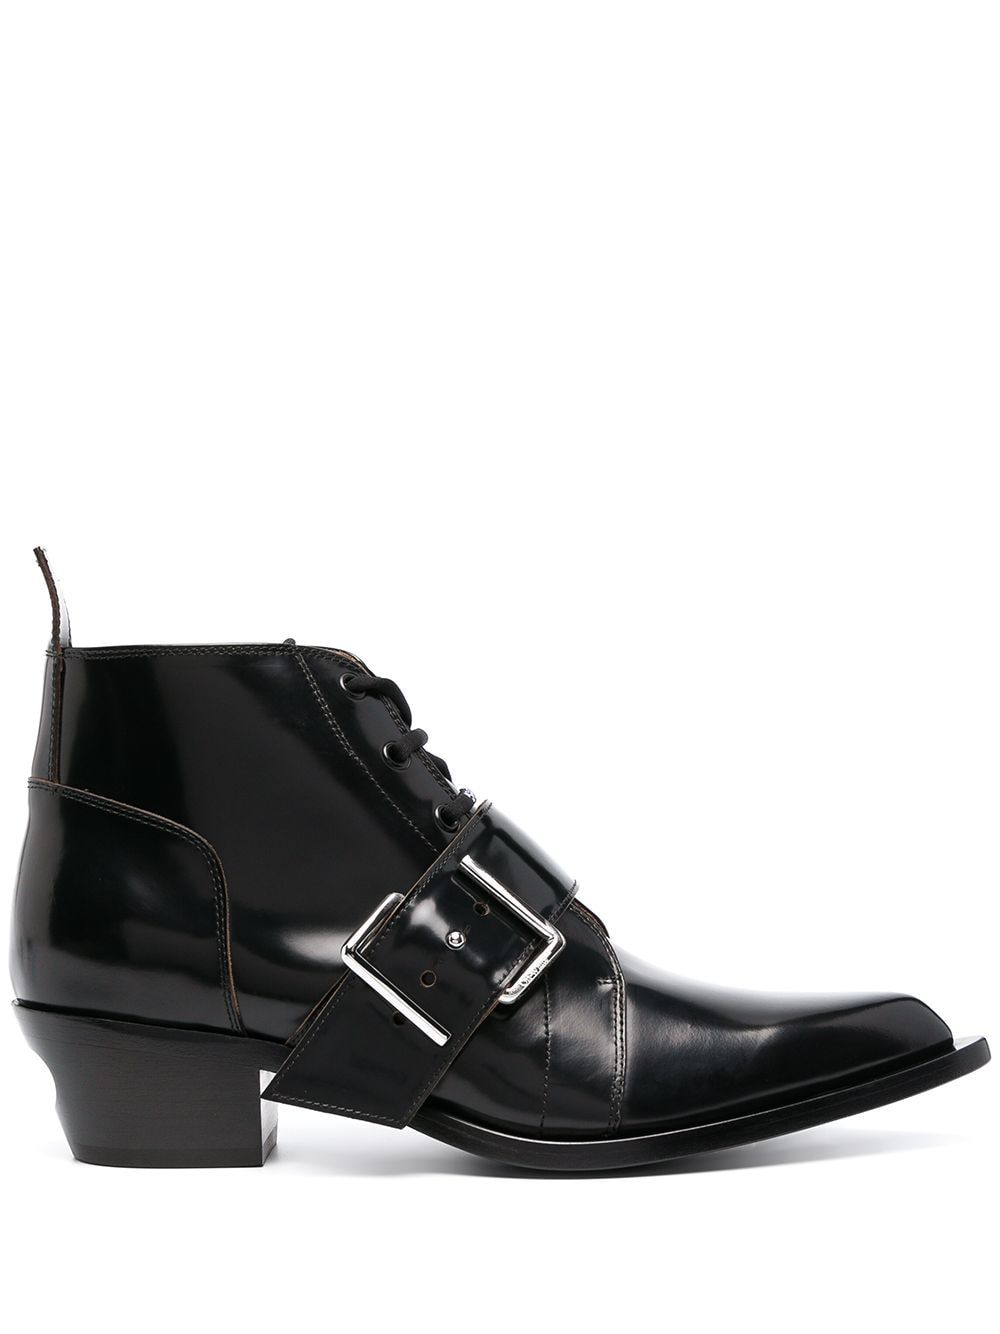 OFF-WHITE OFF-WHITE MEN'S BLACK LEATHER ANKLE BOOTS